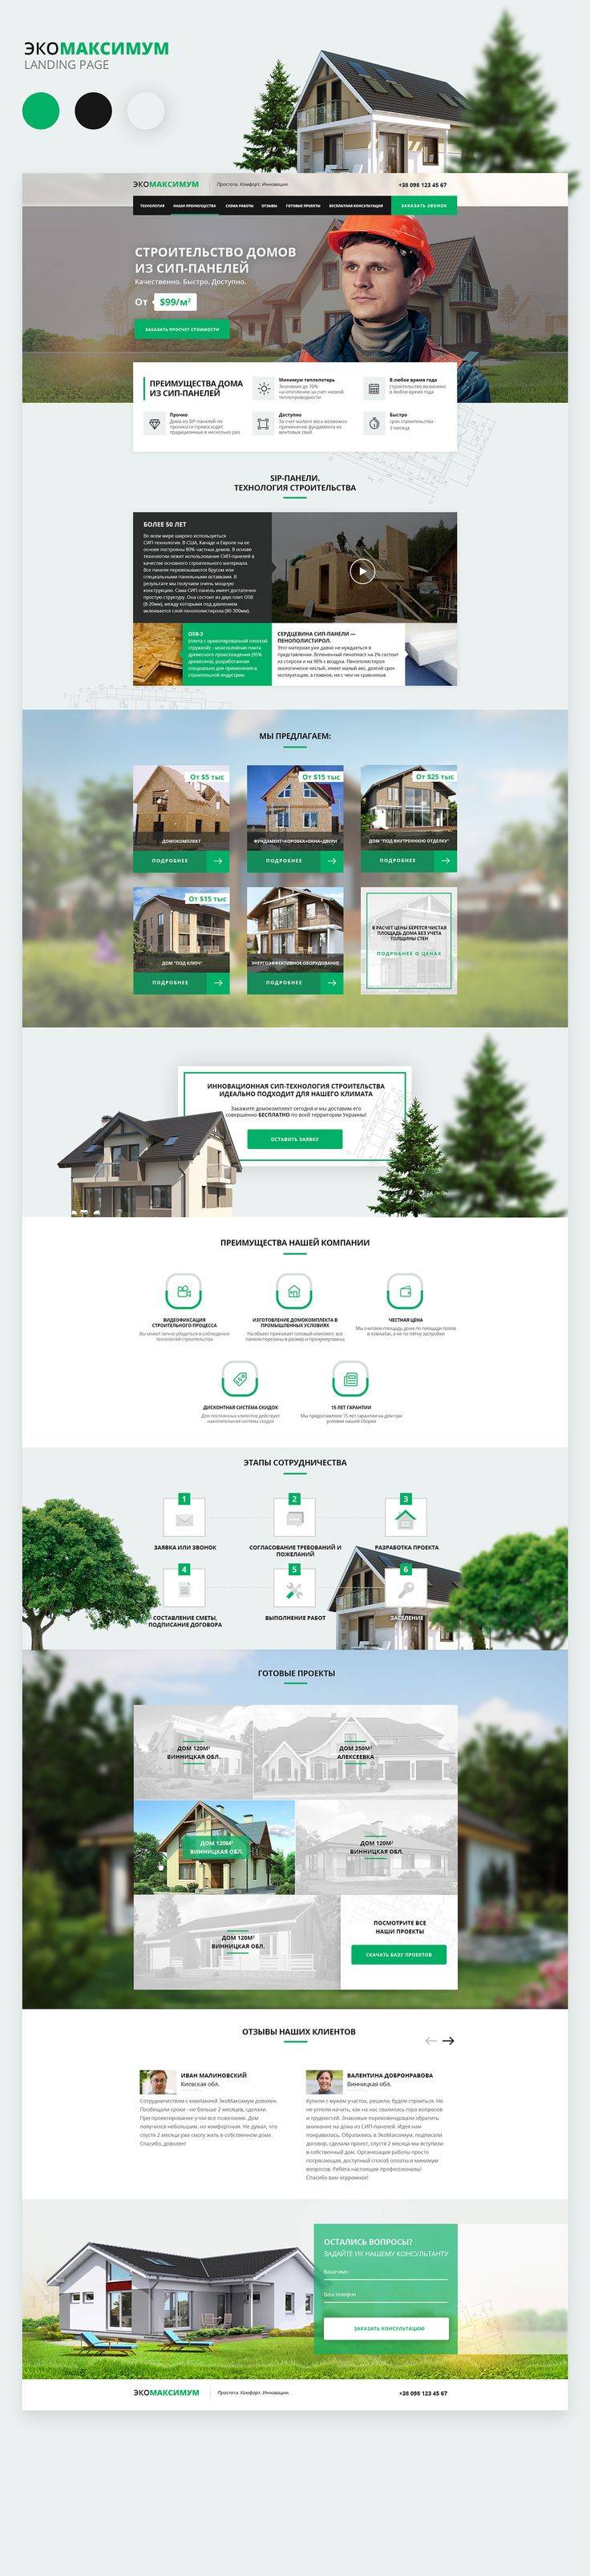 """Construction of houses"" Landing Page on Behance"